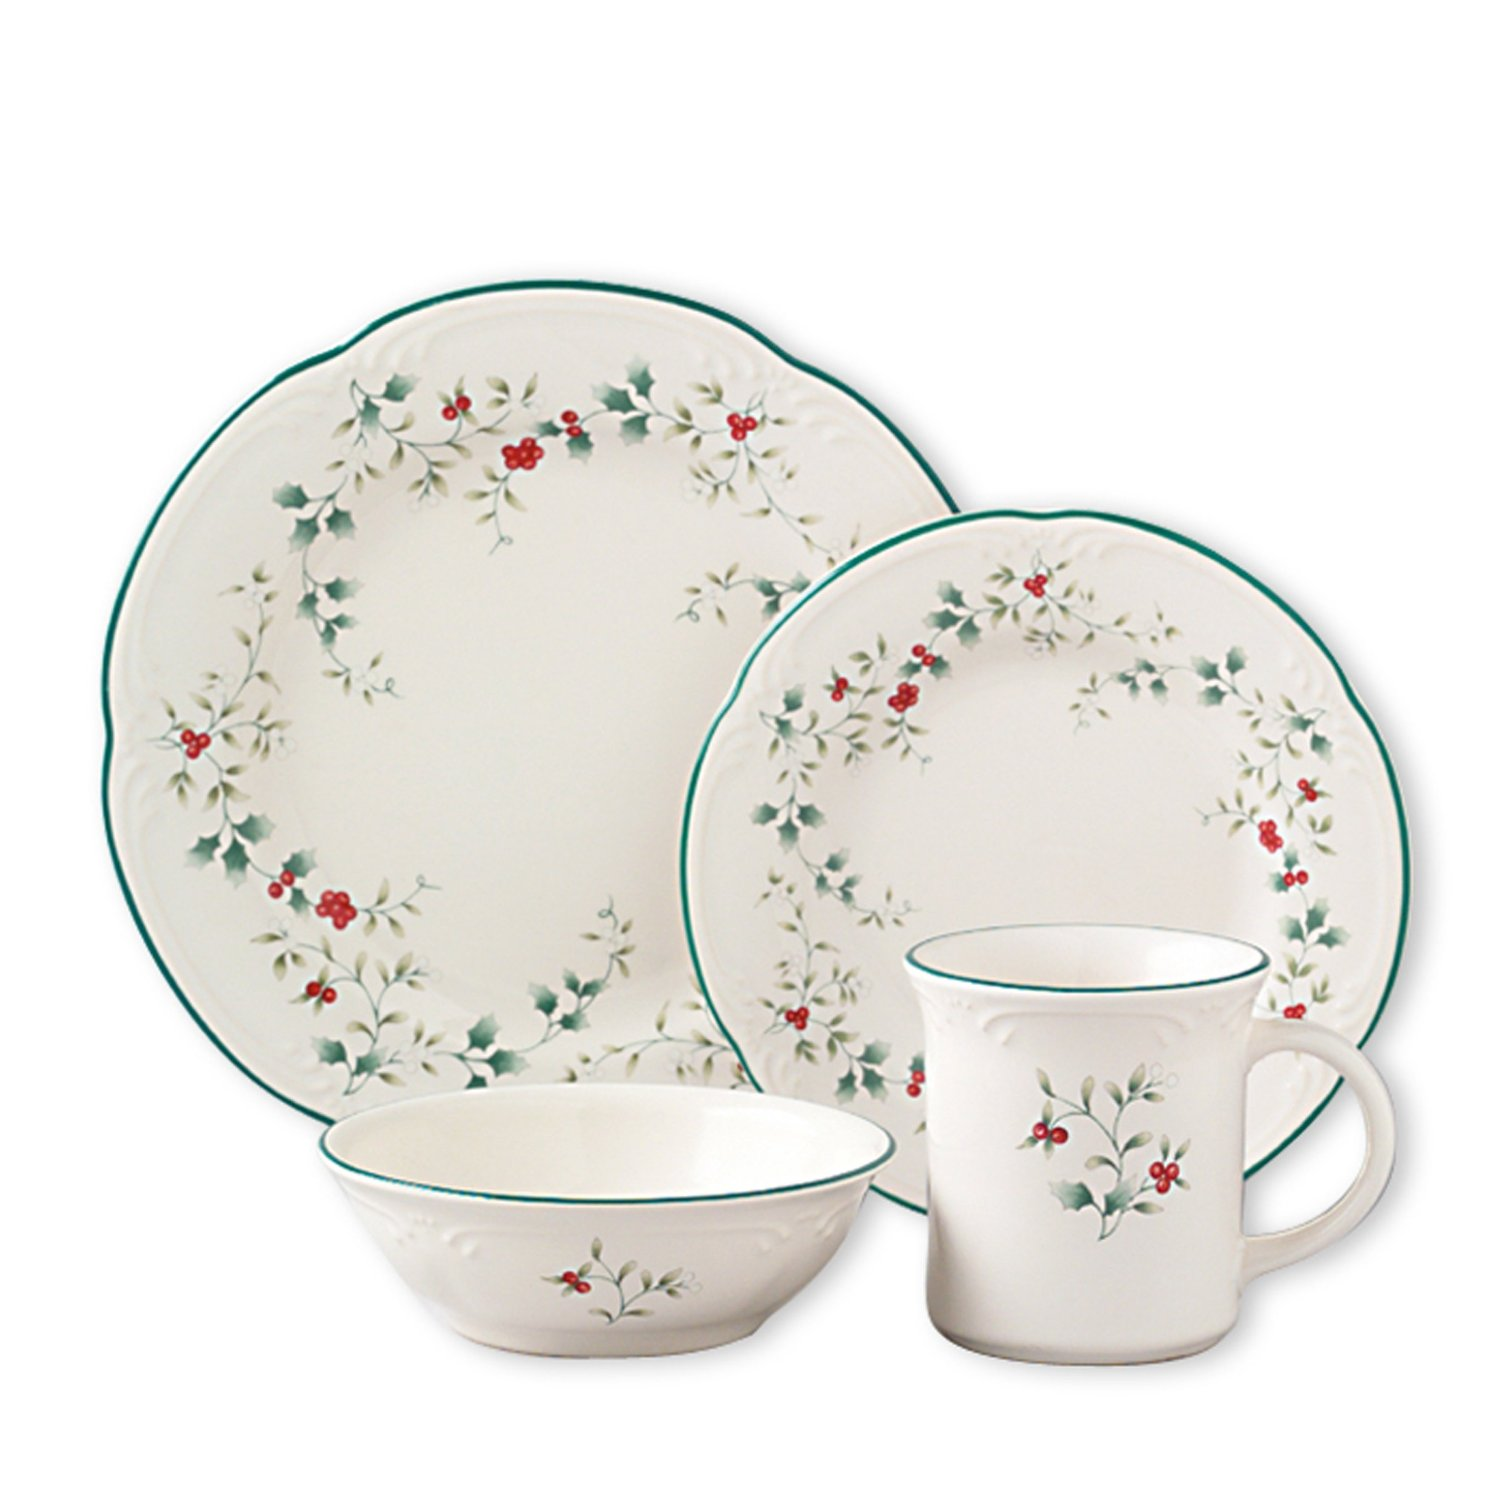 Pfaltzgraff Winterberry Dinnerware Set  sc 1 st  TopProducts.com & Best Winter Dinnerware Set Reviews of 2018 at TopProducts.com